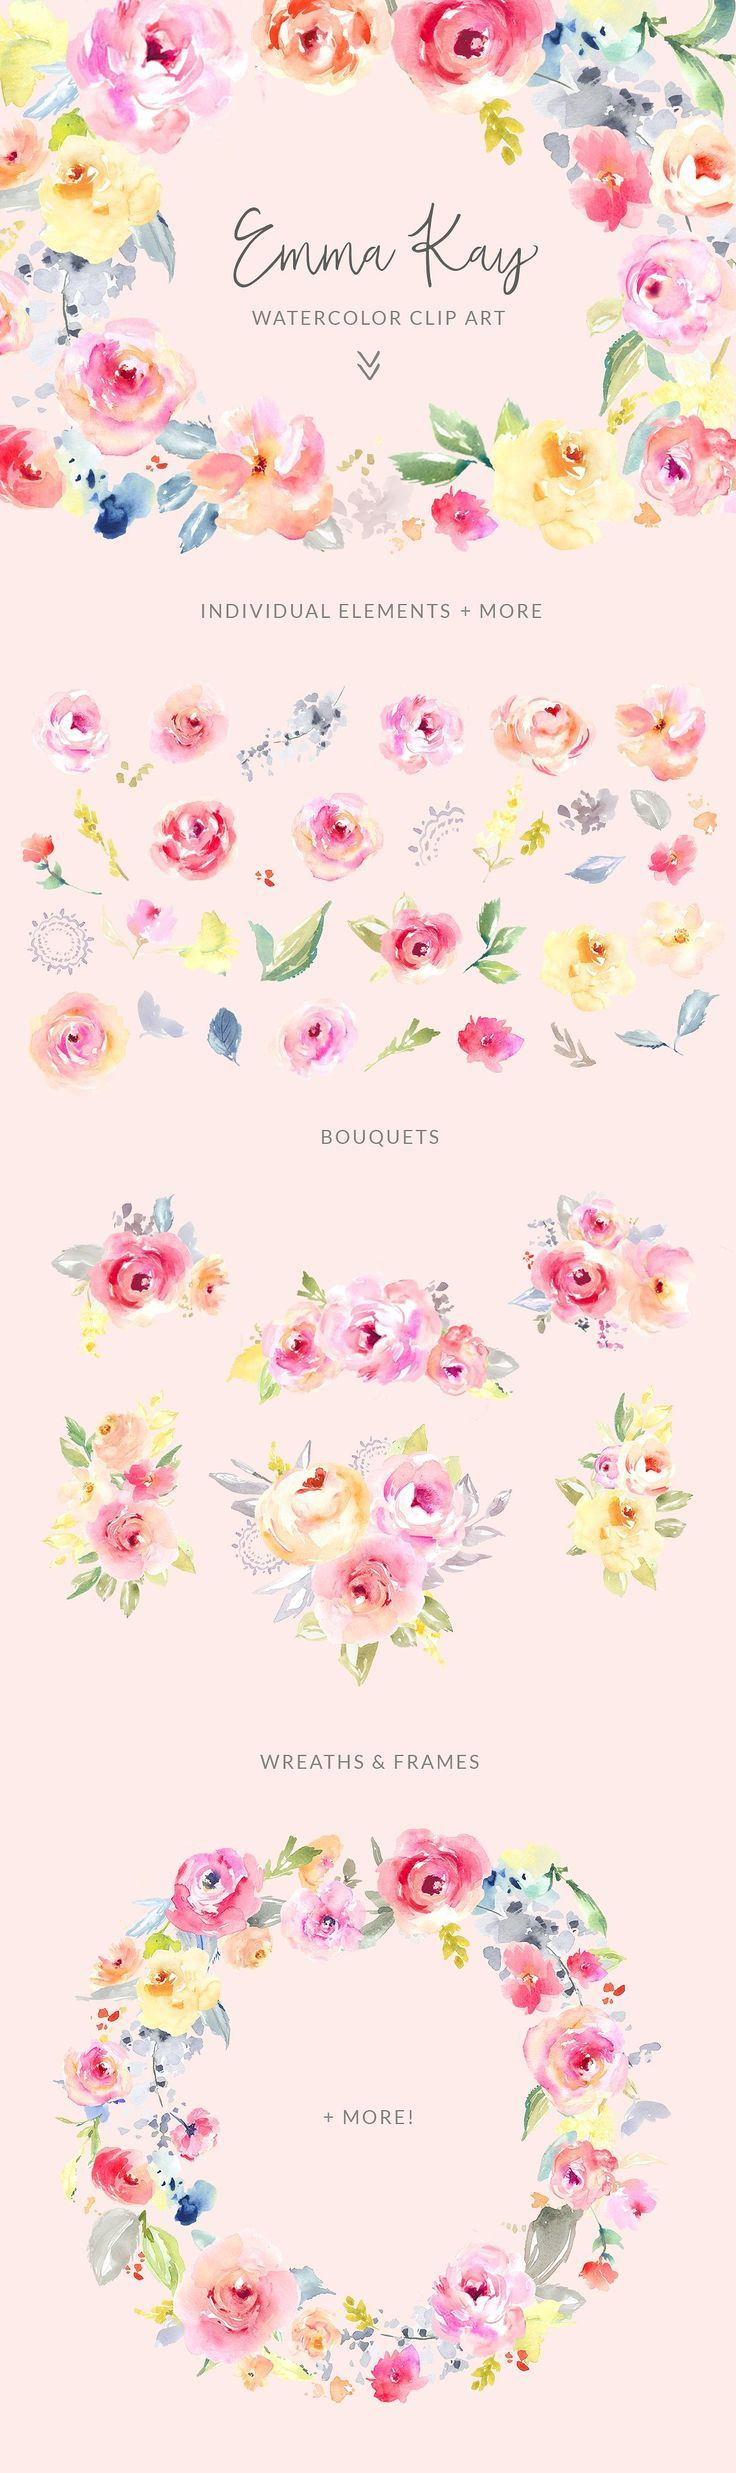 Ad emma kay watercolor clip art flower by angie makes on